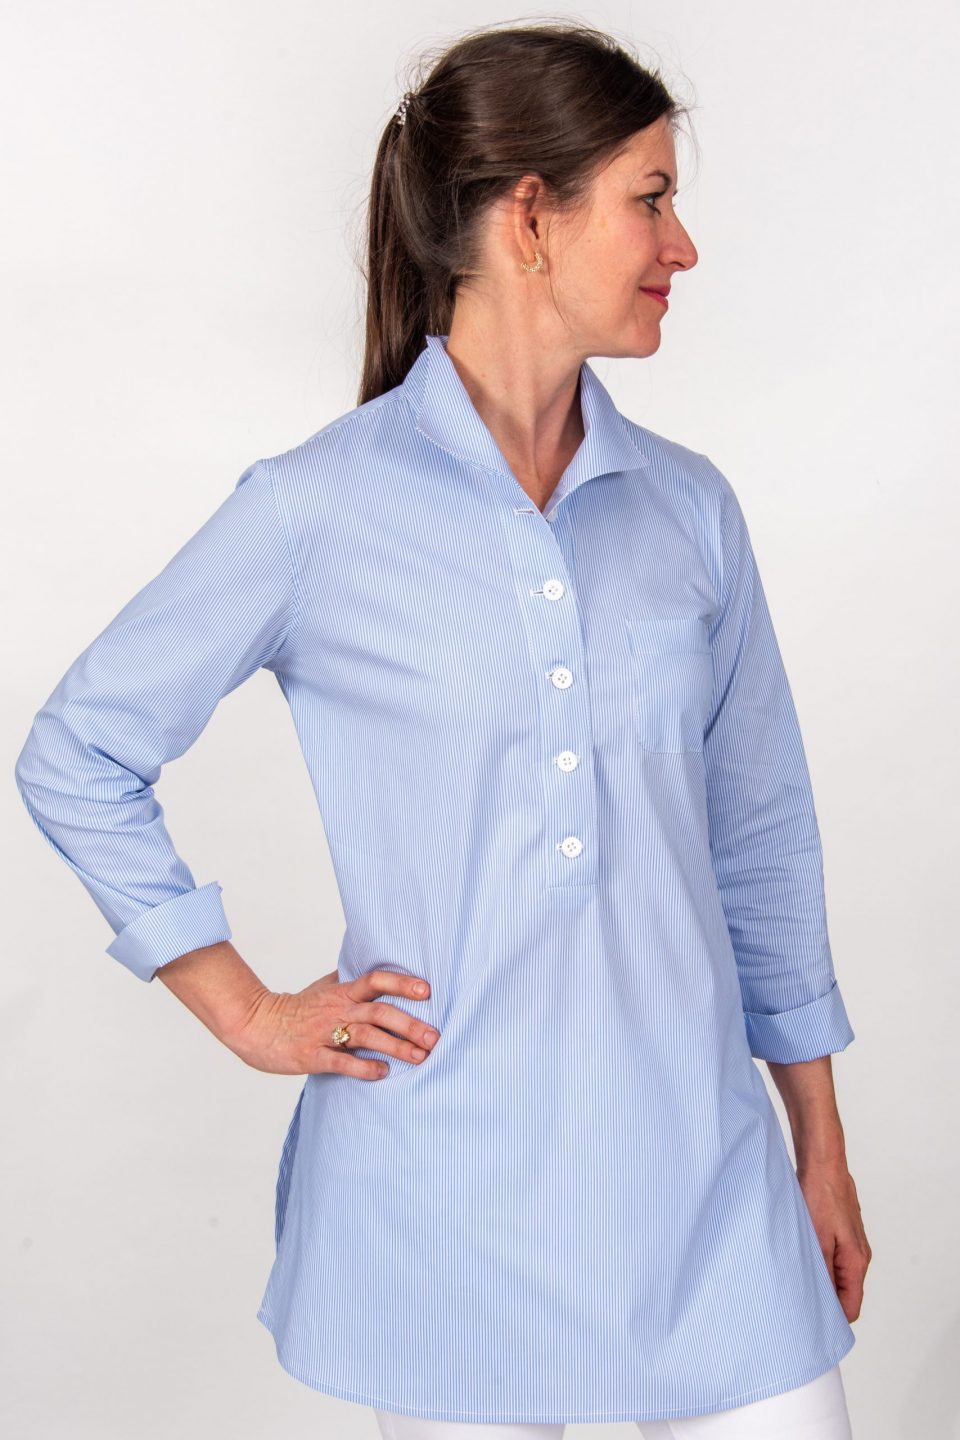 Eve 3/4 Sleeve Tunic, Back Buttons Tiny Blue Front-1- Diane Bailey Designs